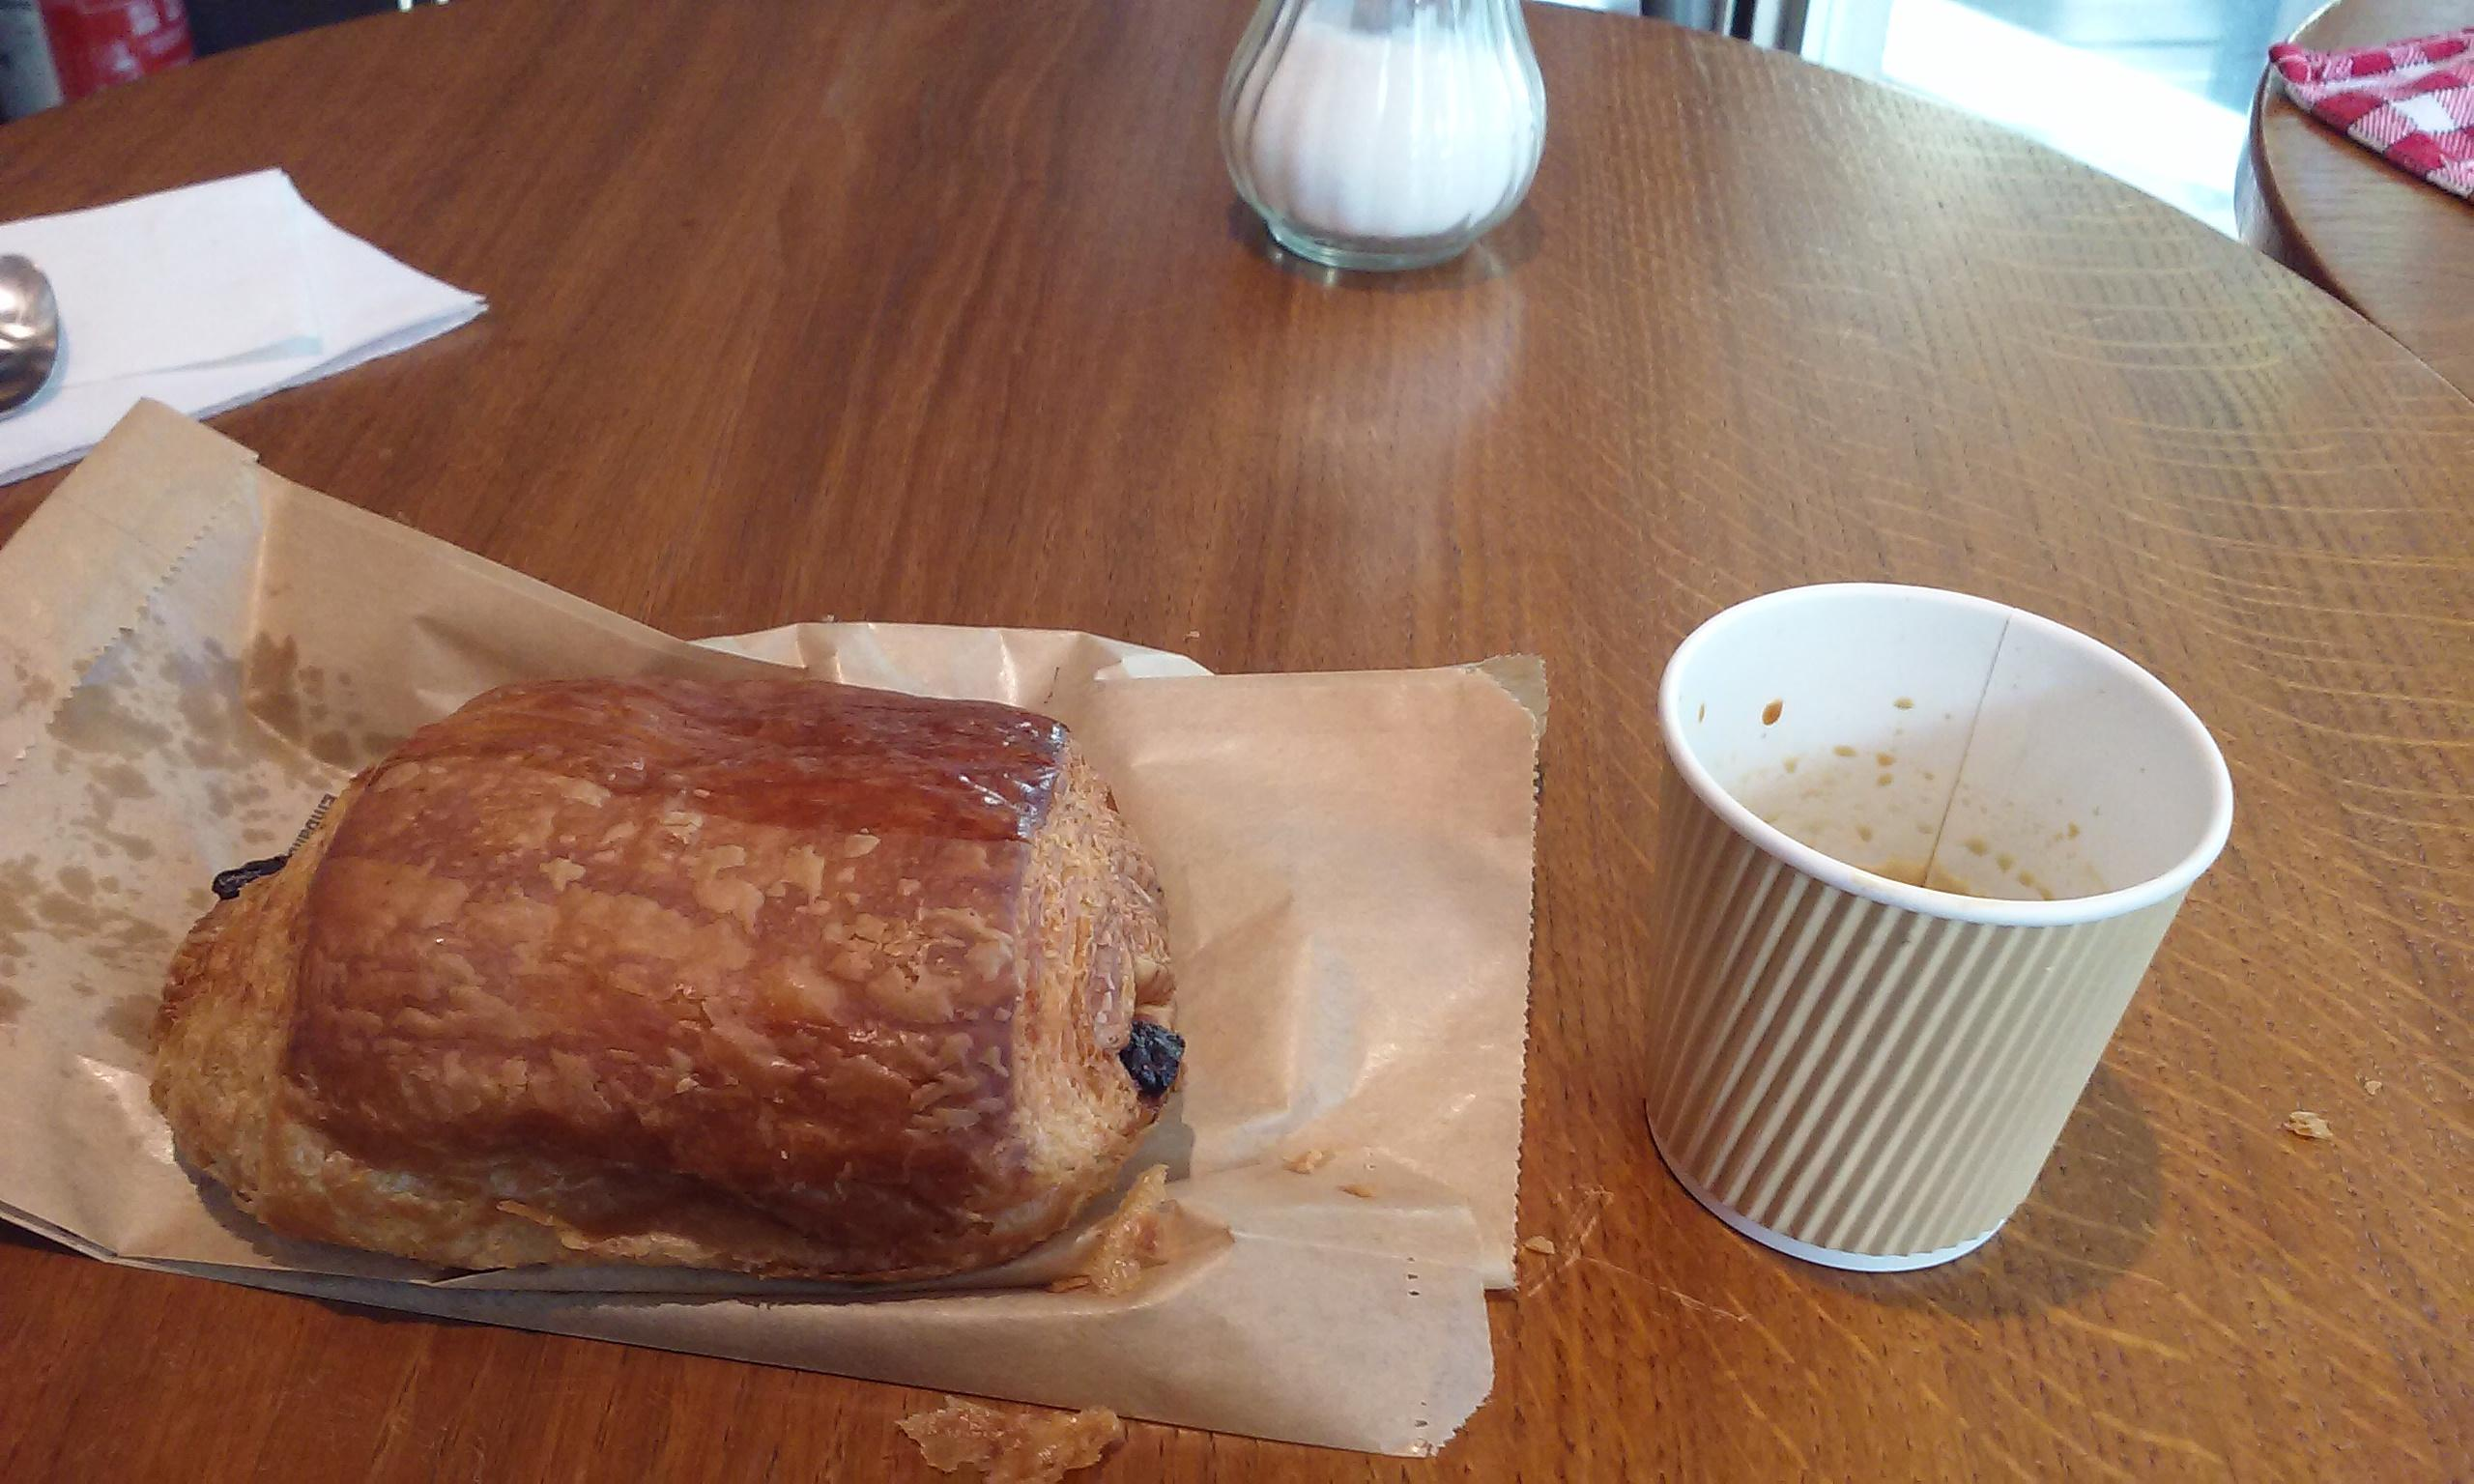 First breakfast in Paris. Chocolate pastry and small coffee at Aux Arts Etc. Across from N